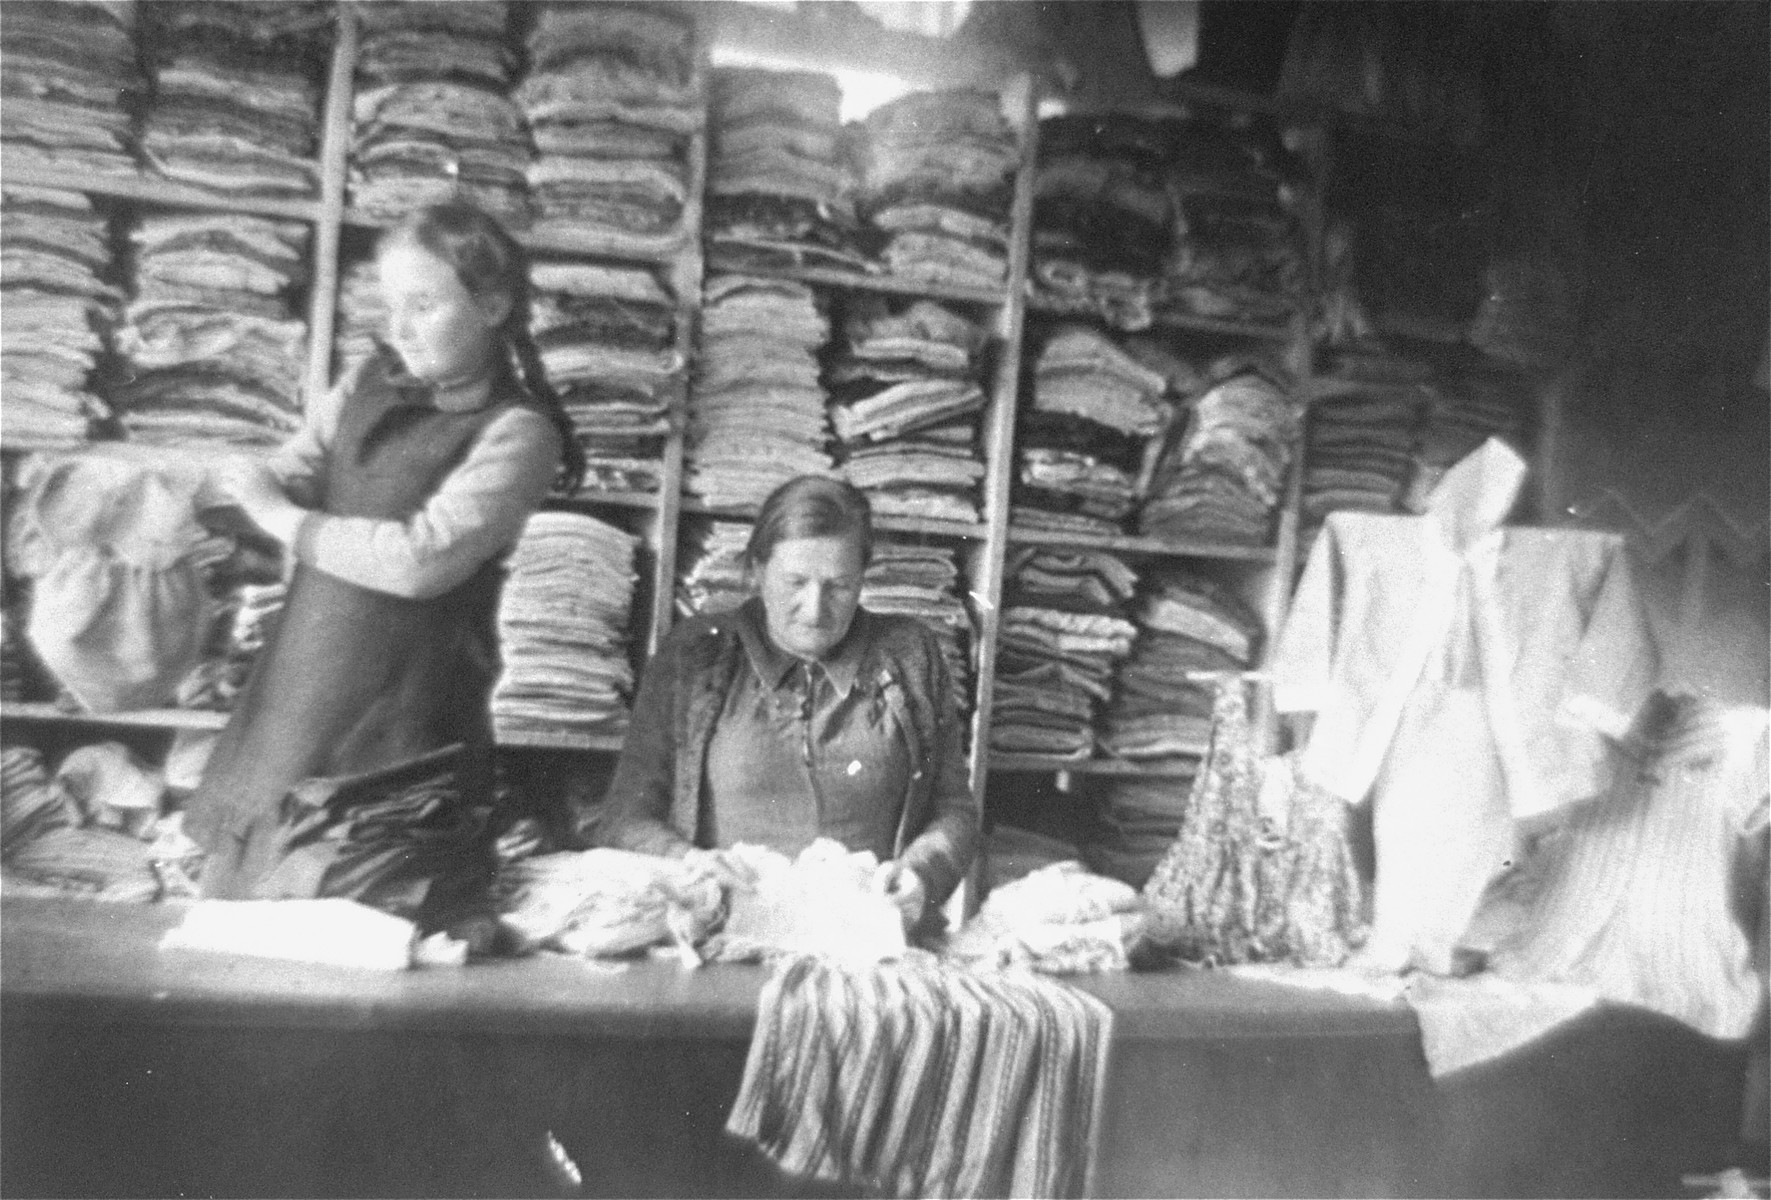 A Jewish woman and girl work in a clothing warehouse in the Glubokoye ghetto.    Among those pictured is Rajze Lederman.